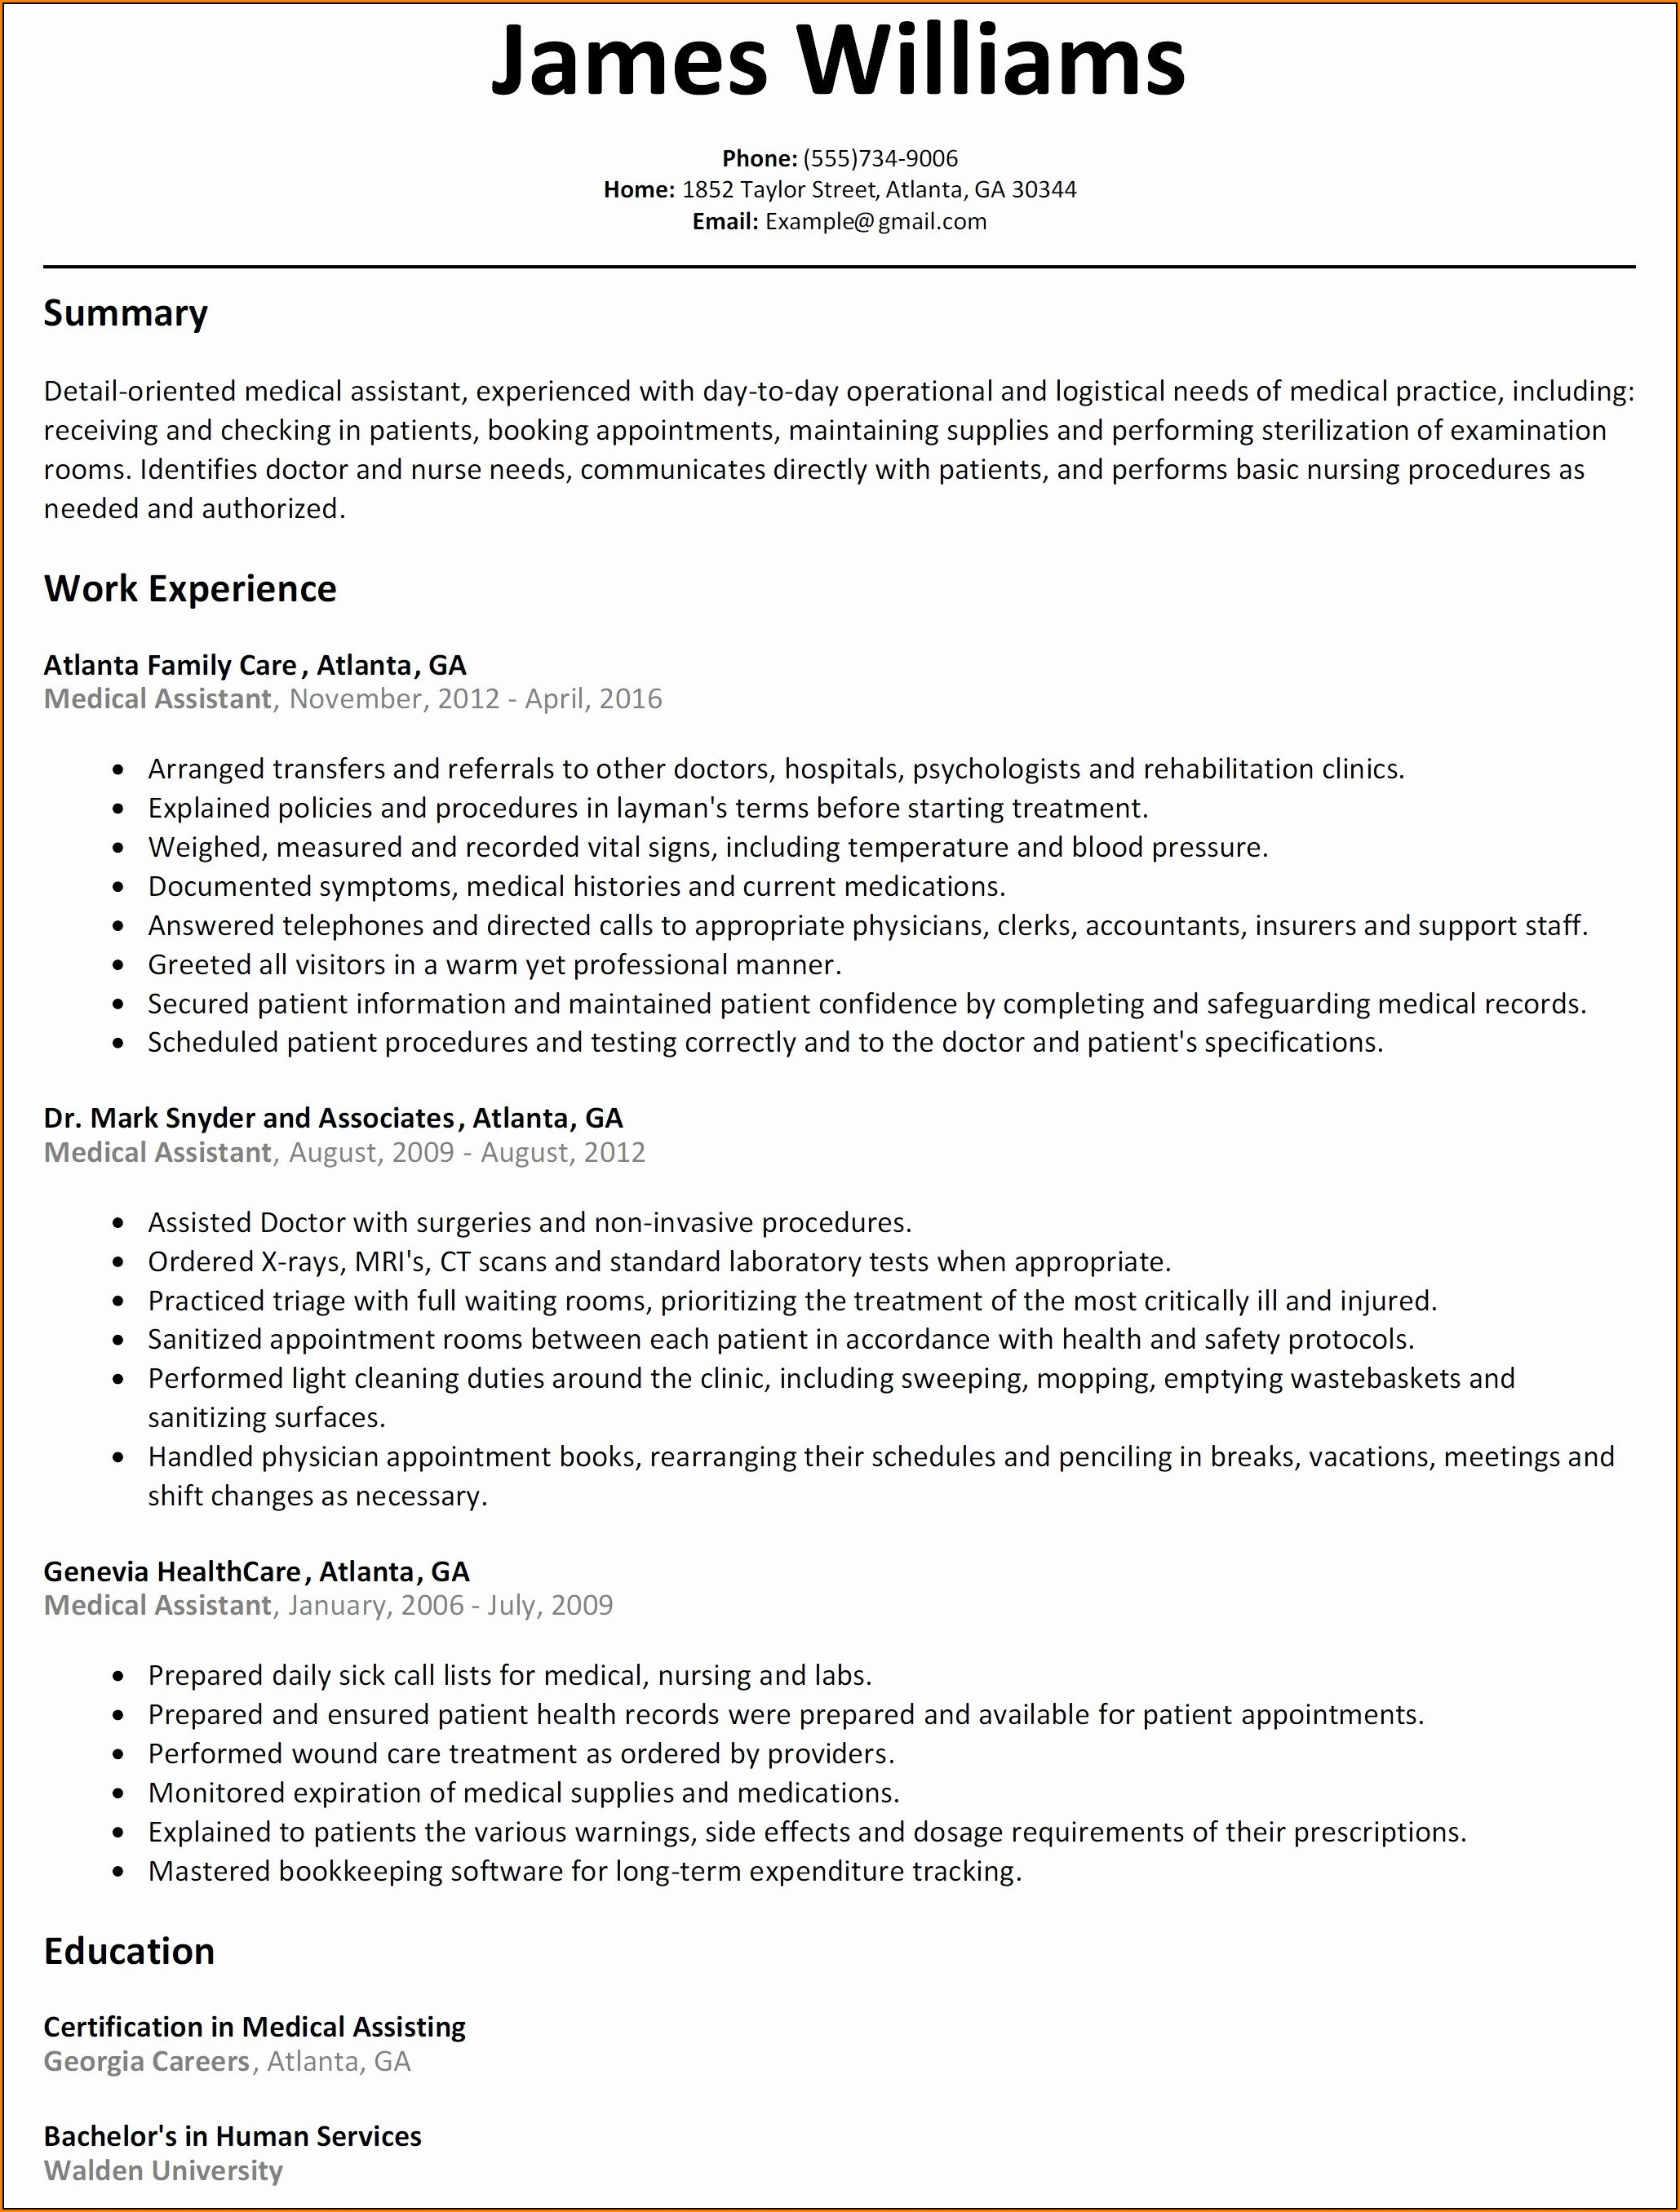 Google Resume Maker